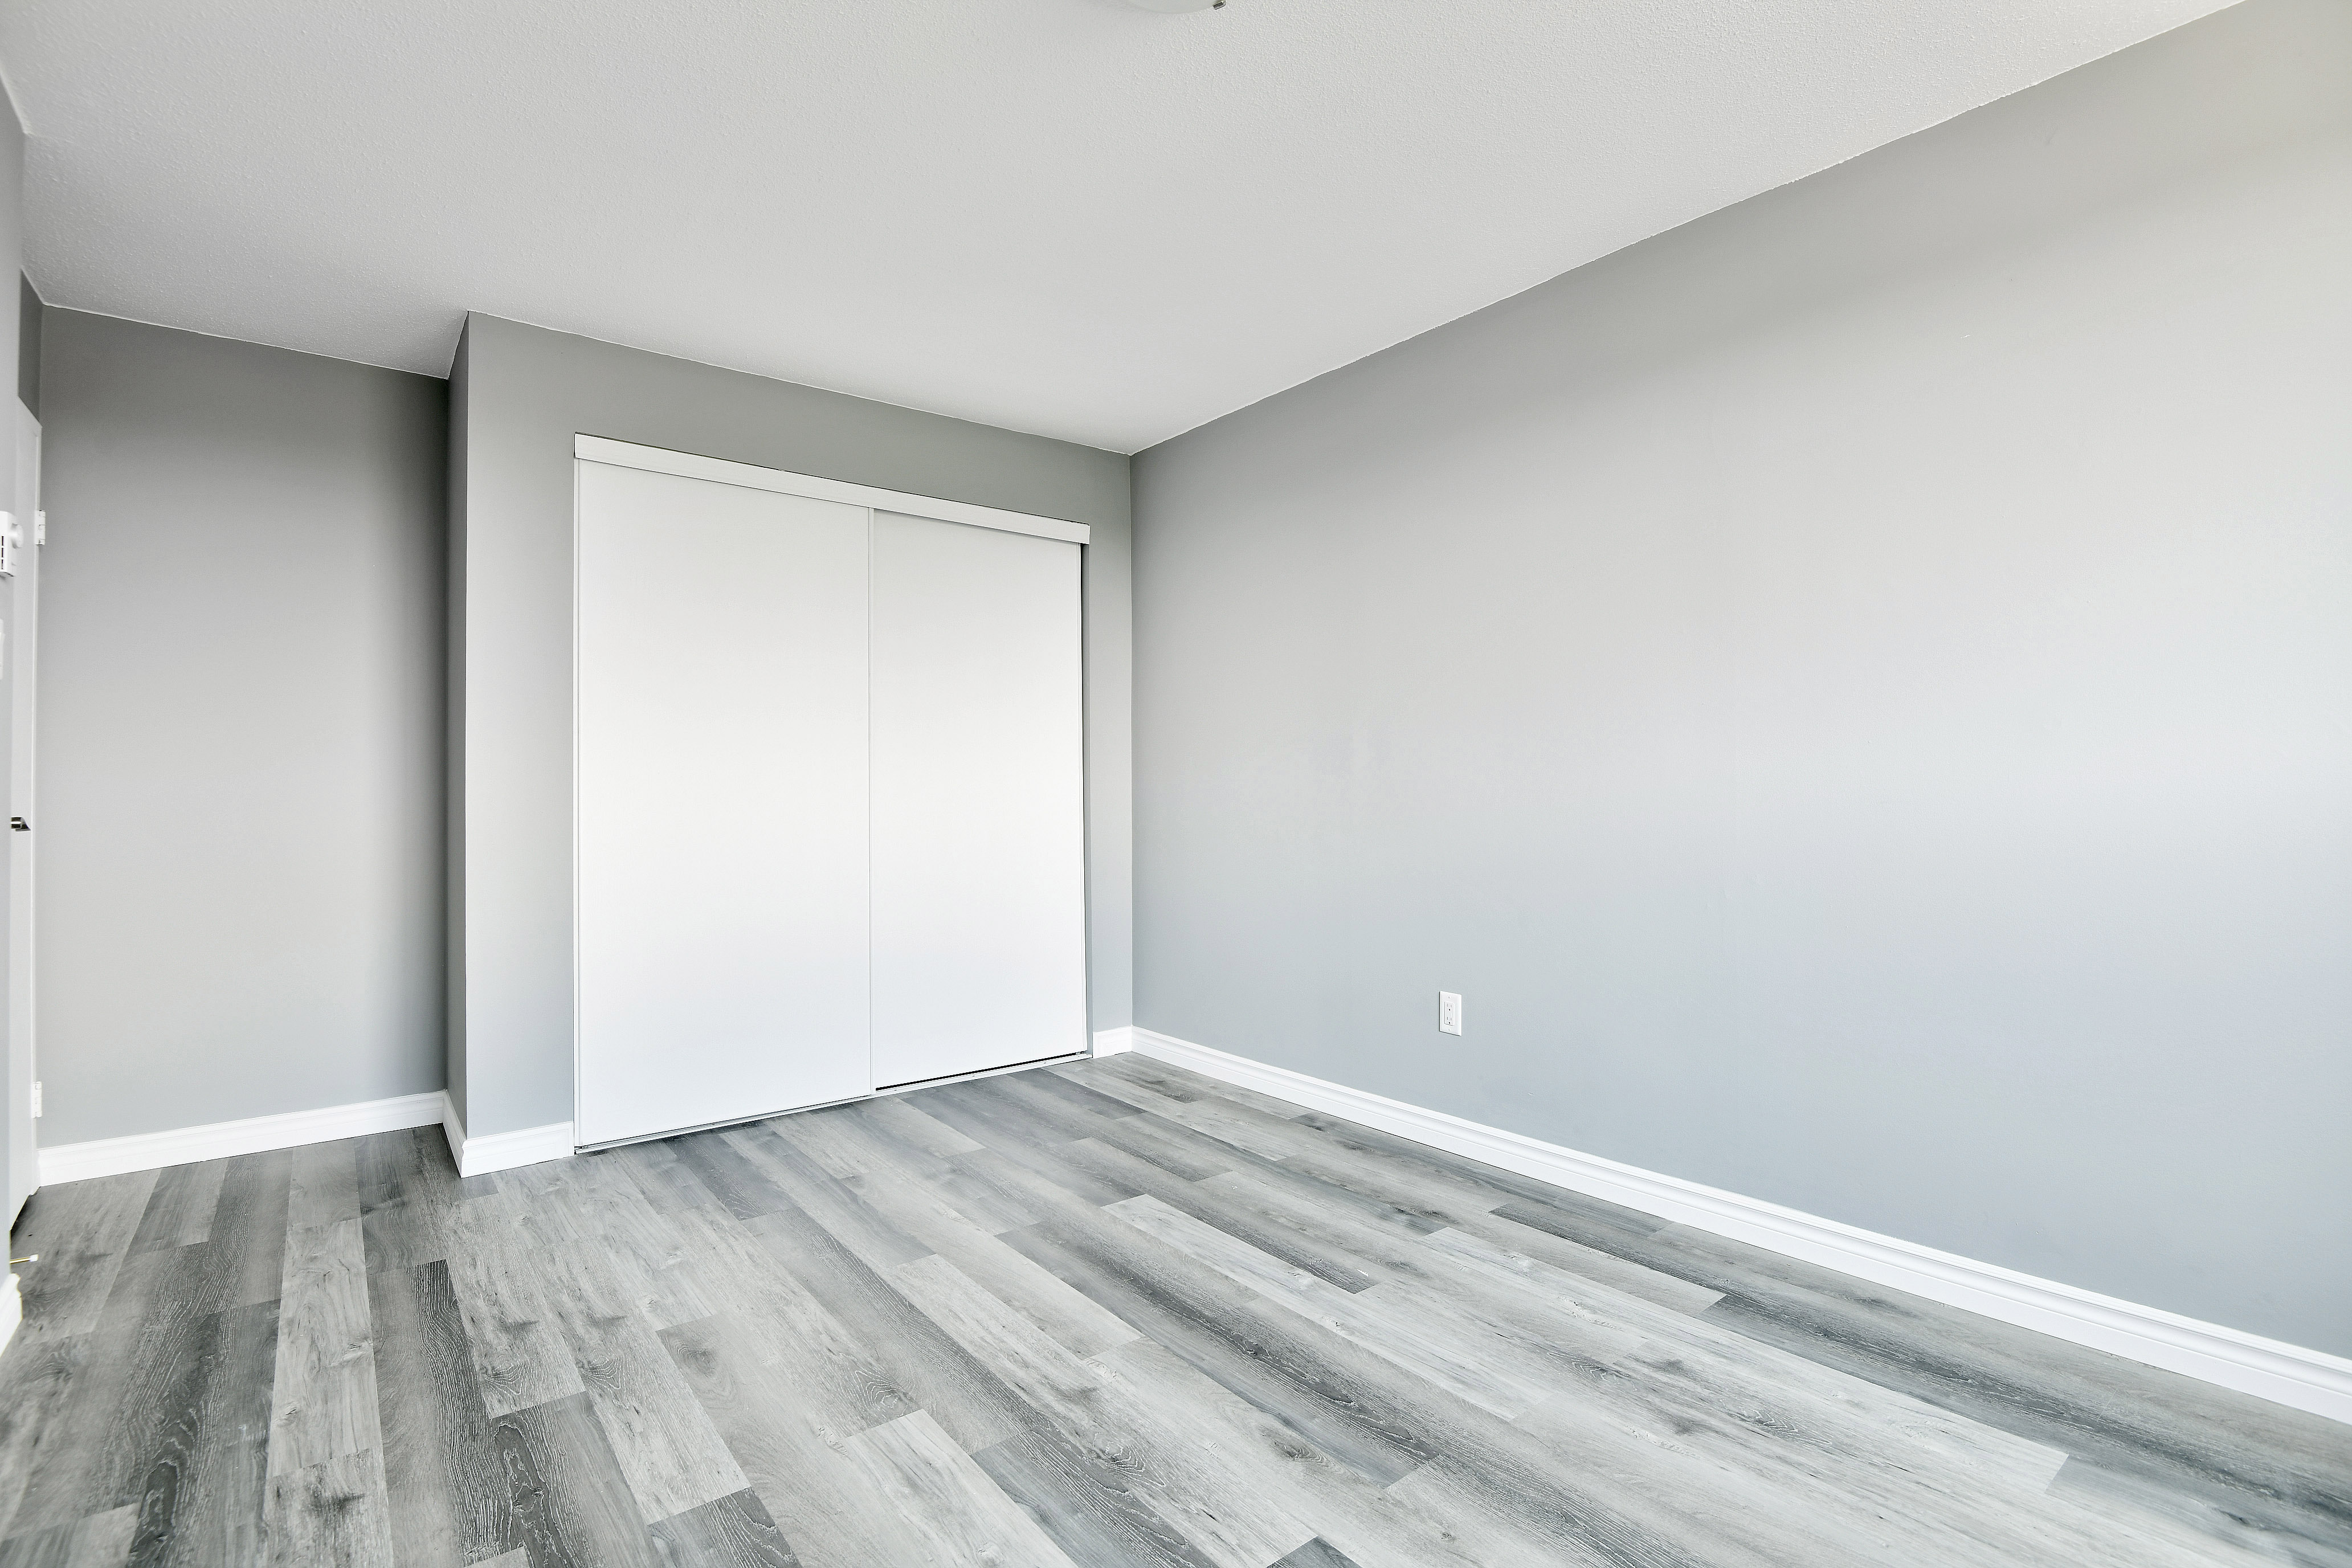 1 bedroom Apartments for rent in Gatineau-Hull at Habitat du Lac Leamy - Photo 04 - RentQuebecApartments – L401592